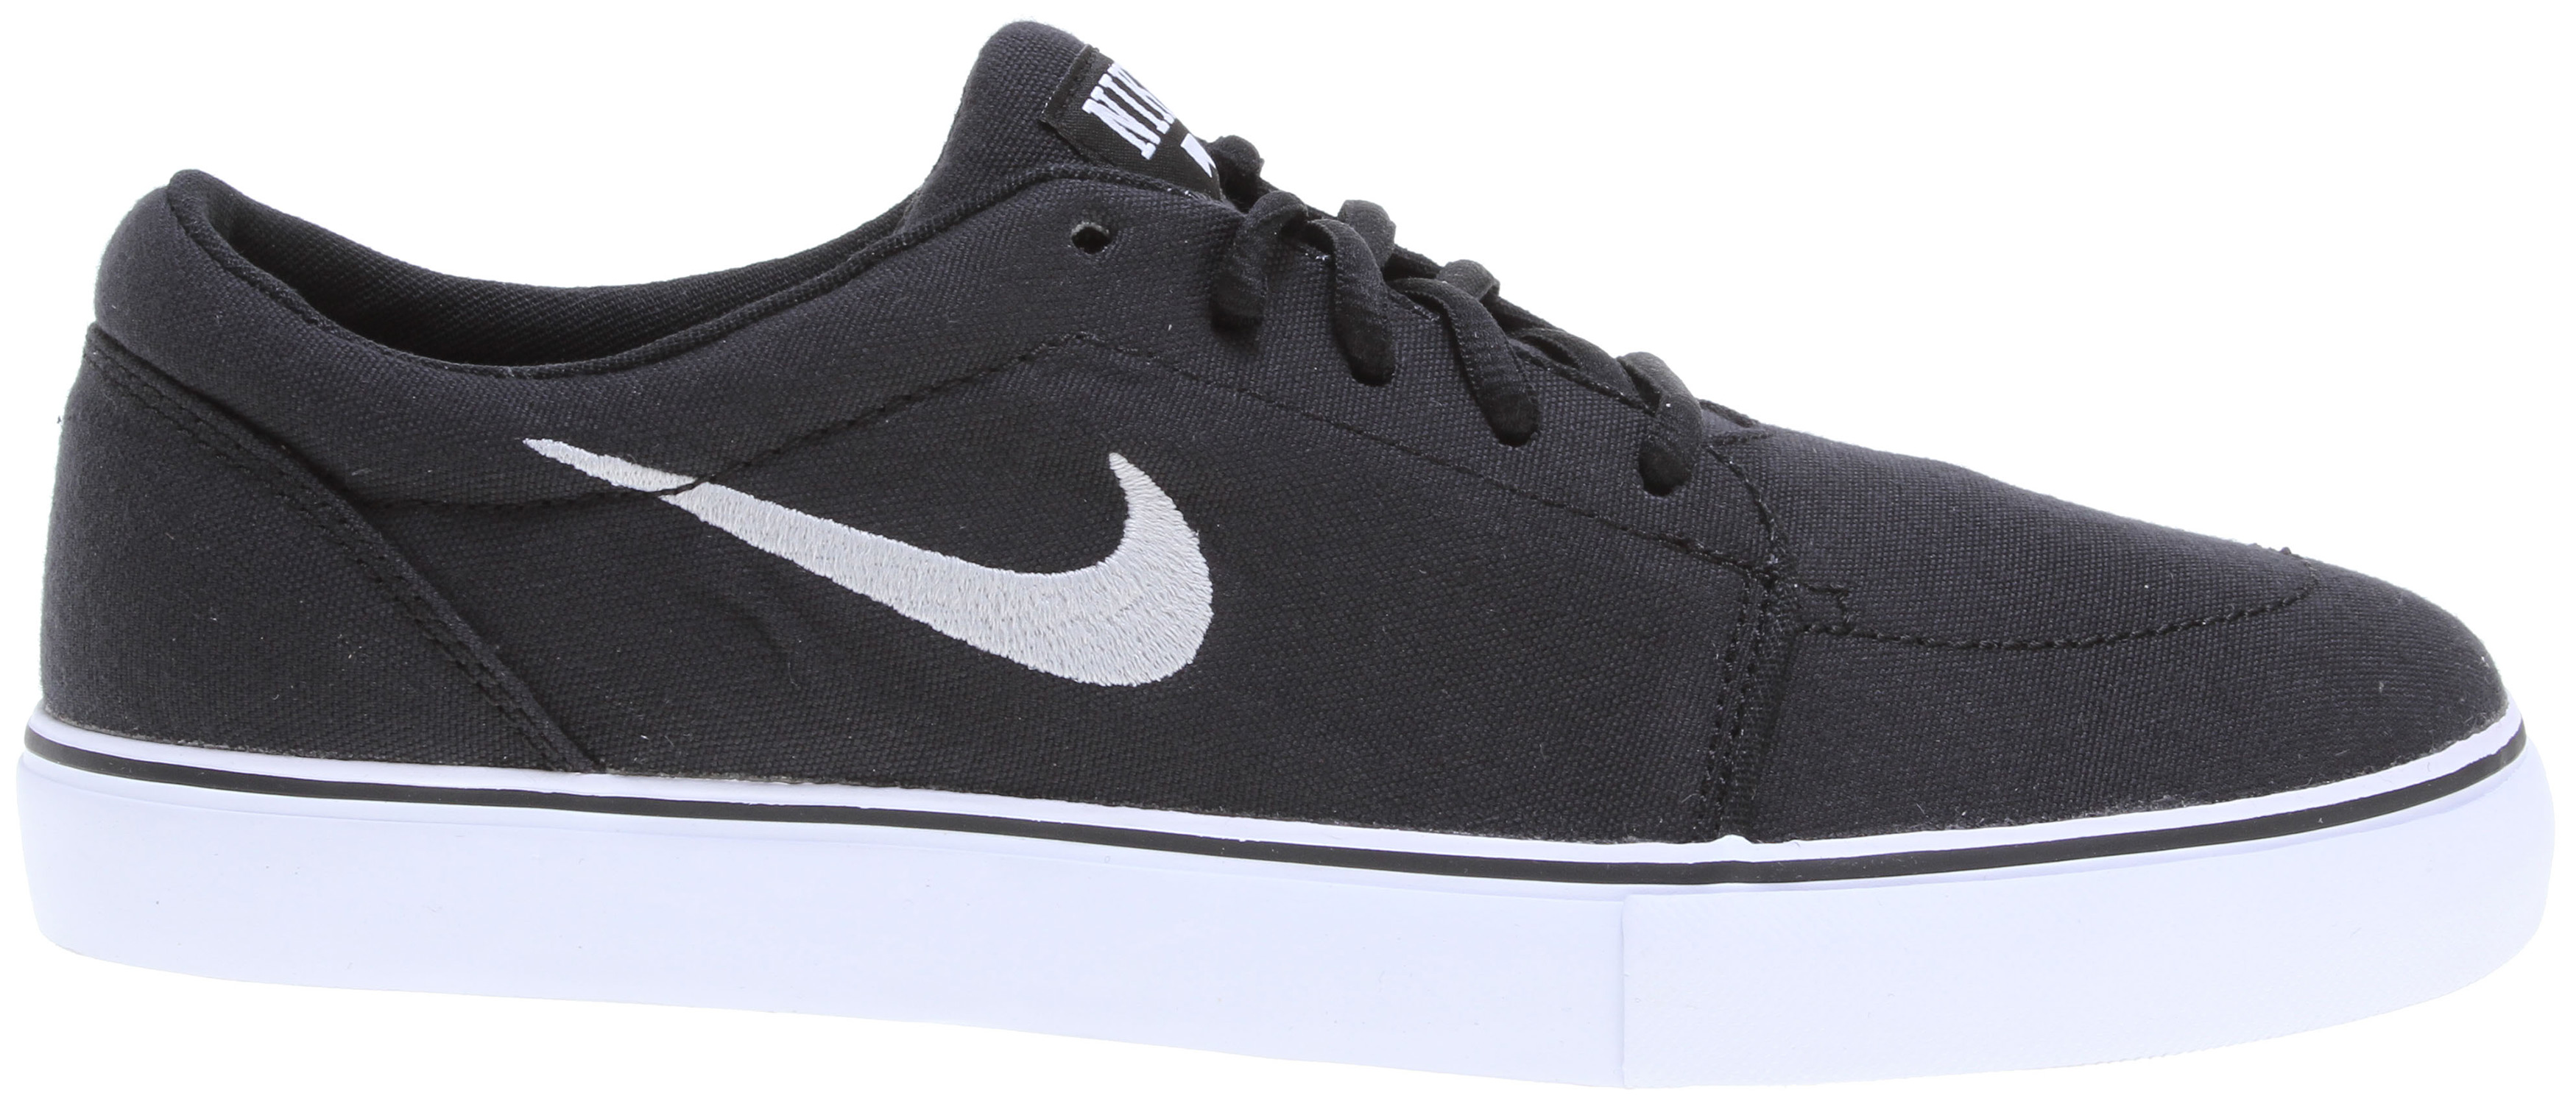 Skateboard Classic minimal skate silhouette. Key Features of the Nike Satire Canvas Skate Shoes: Suede, leather, and Nubuck materials. Vulcanized construction for comfort and boardfeel. Flexible vulcanized construction with a tacky gum rubber outsole. - $62.00